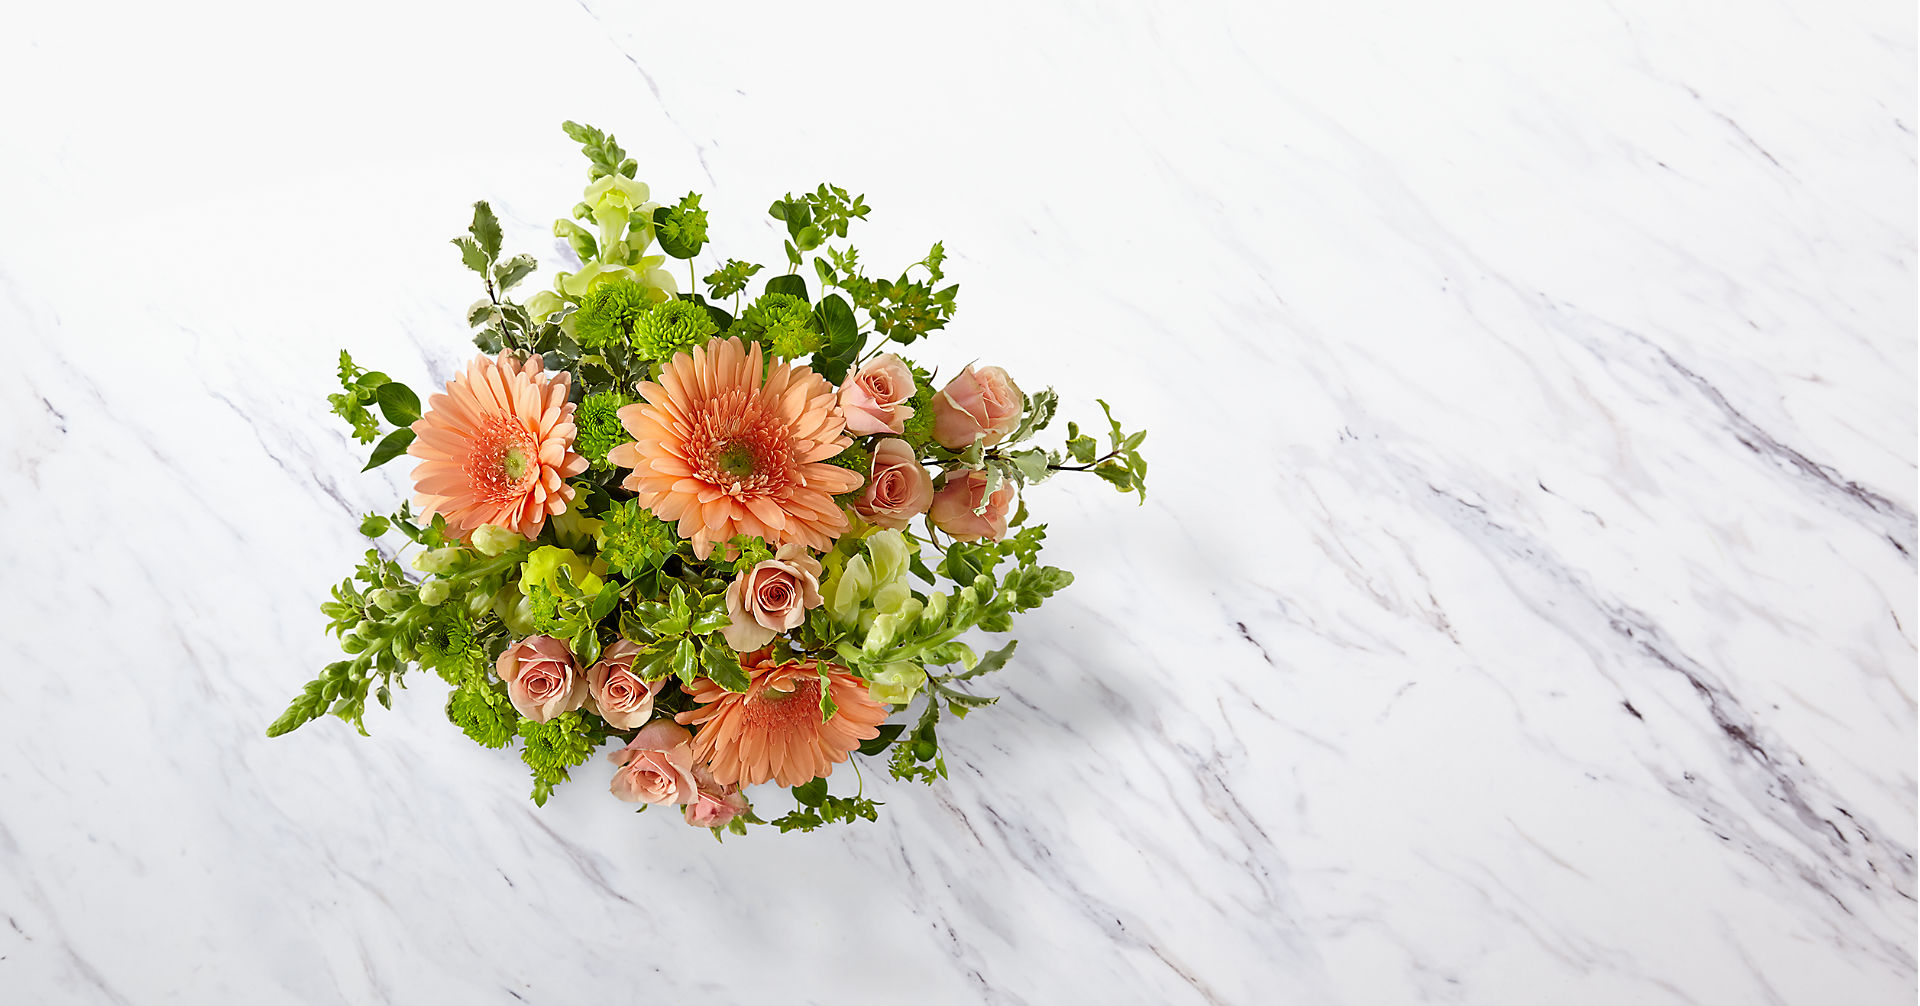 Peachy Keen™ Bouquet by FTD® - Image 2 Of 3